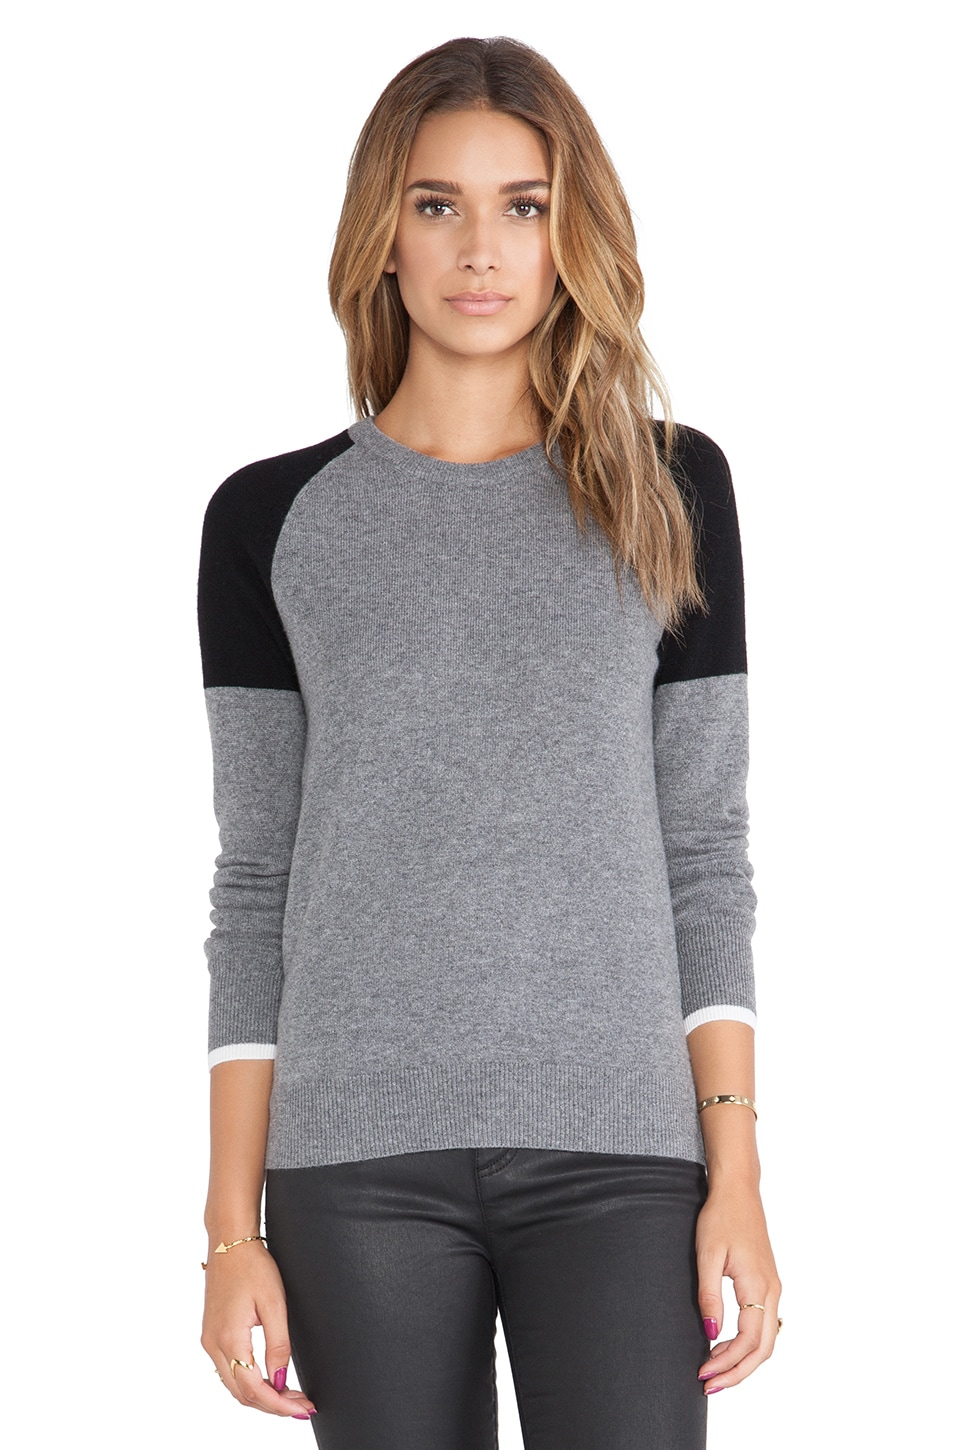 Equipment Sloane Colorblock Crewneck Sweater in Heather Grey & Black Multi